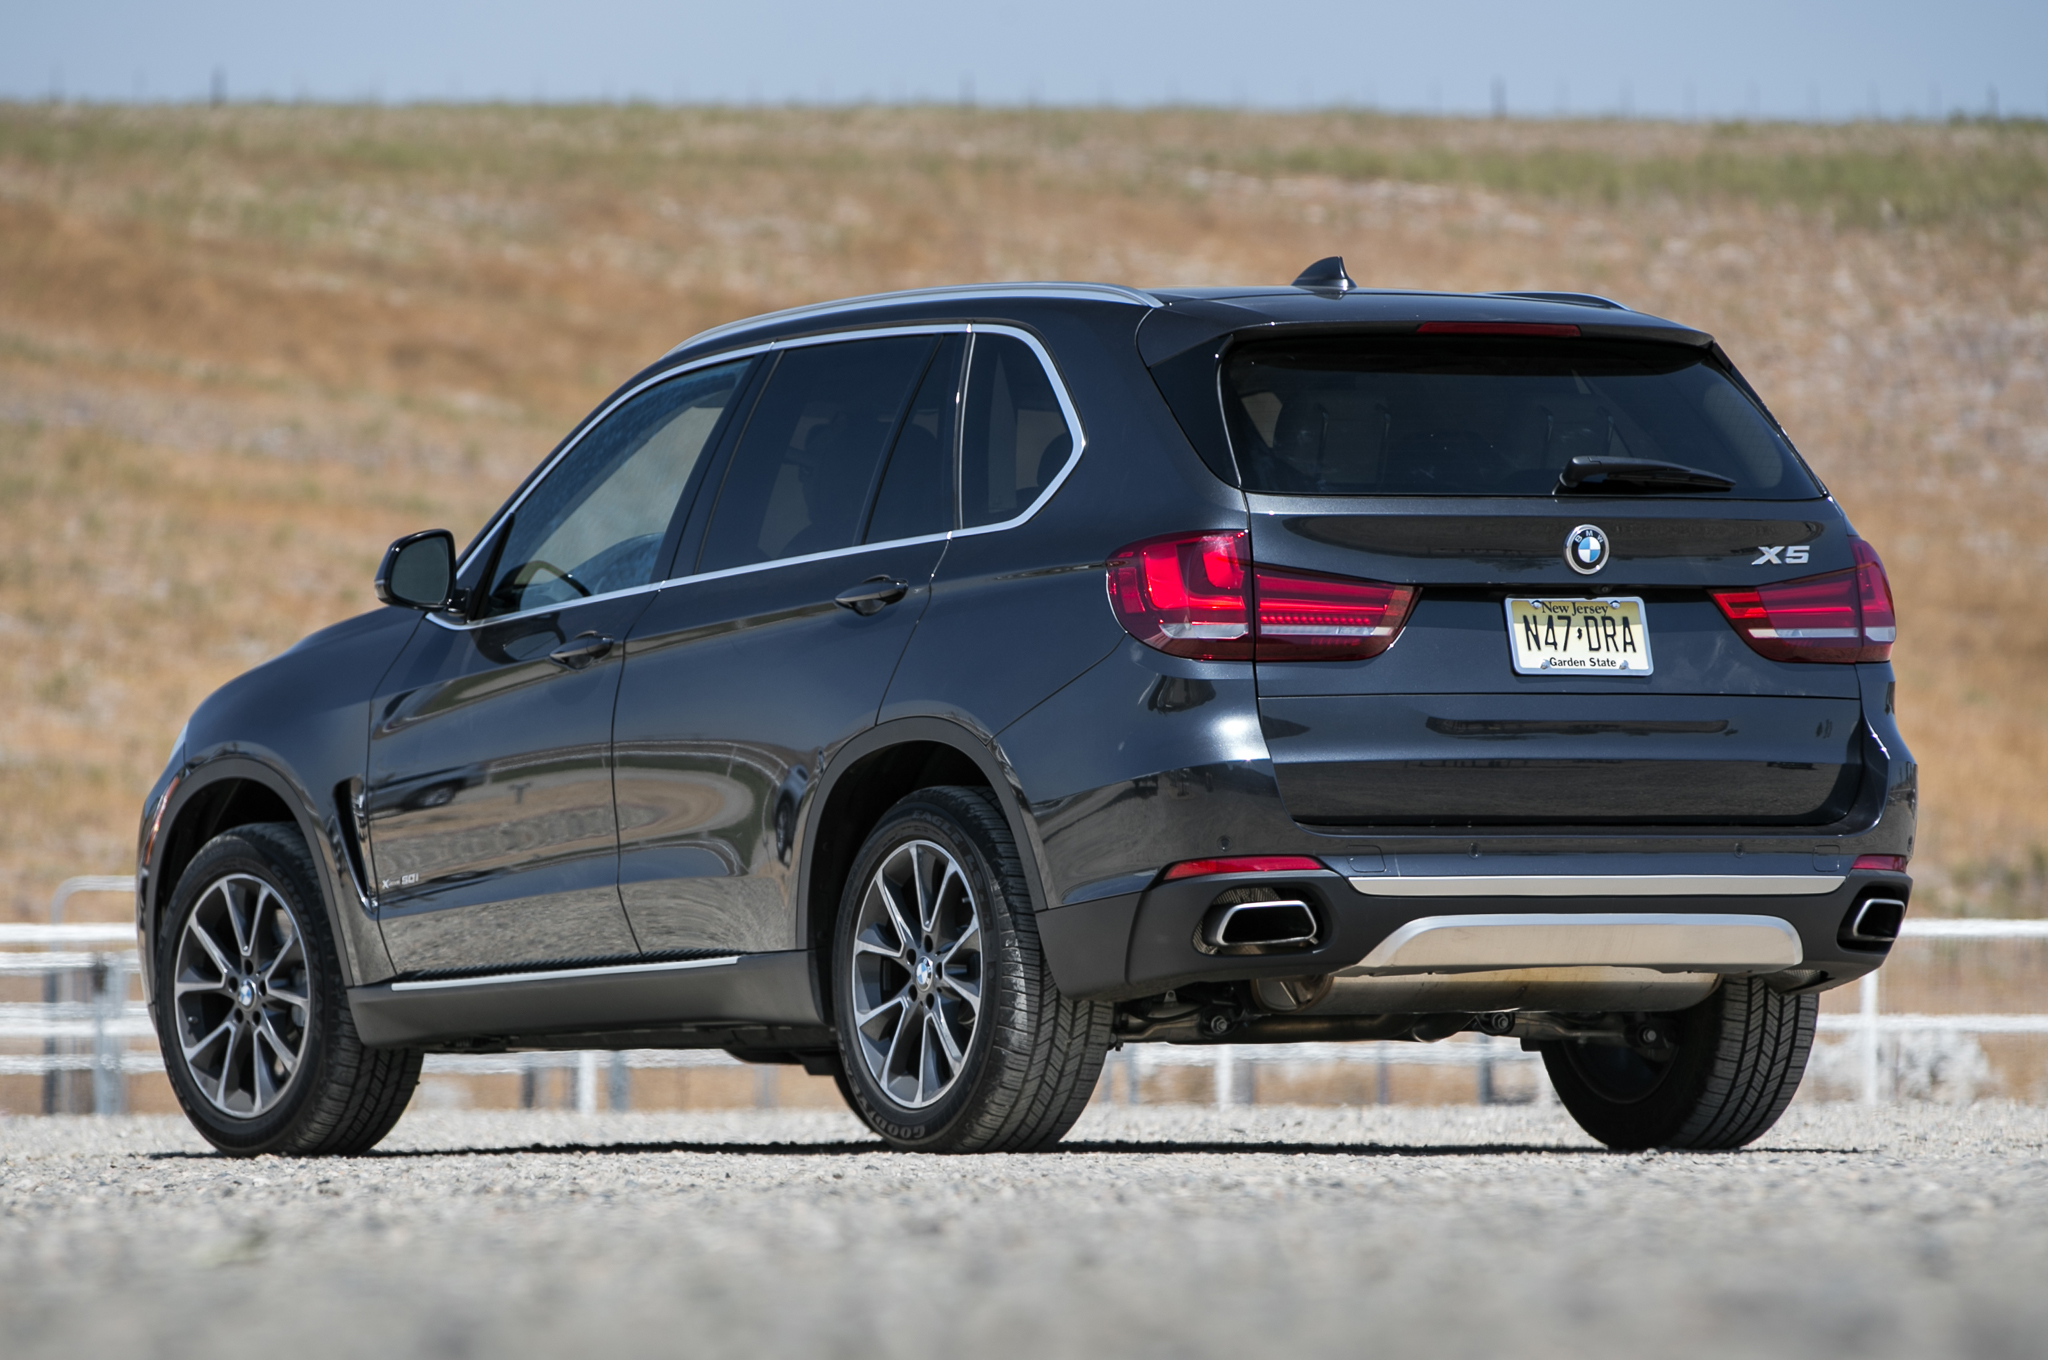 2019 BMW X5 Security Plus Concept photo - 3